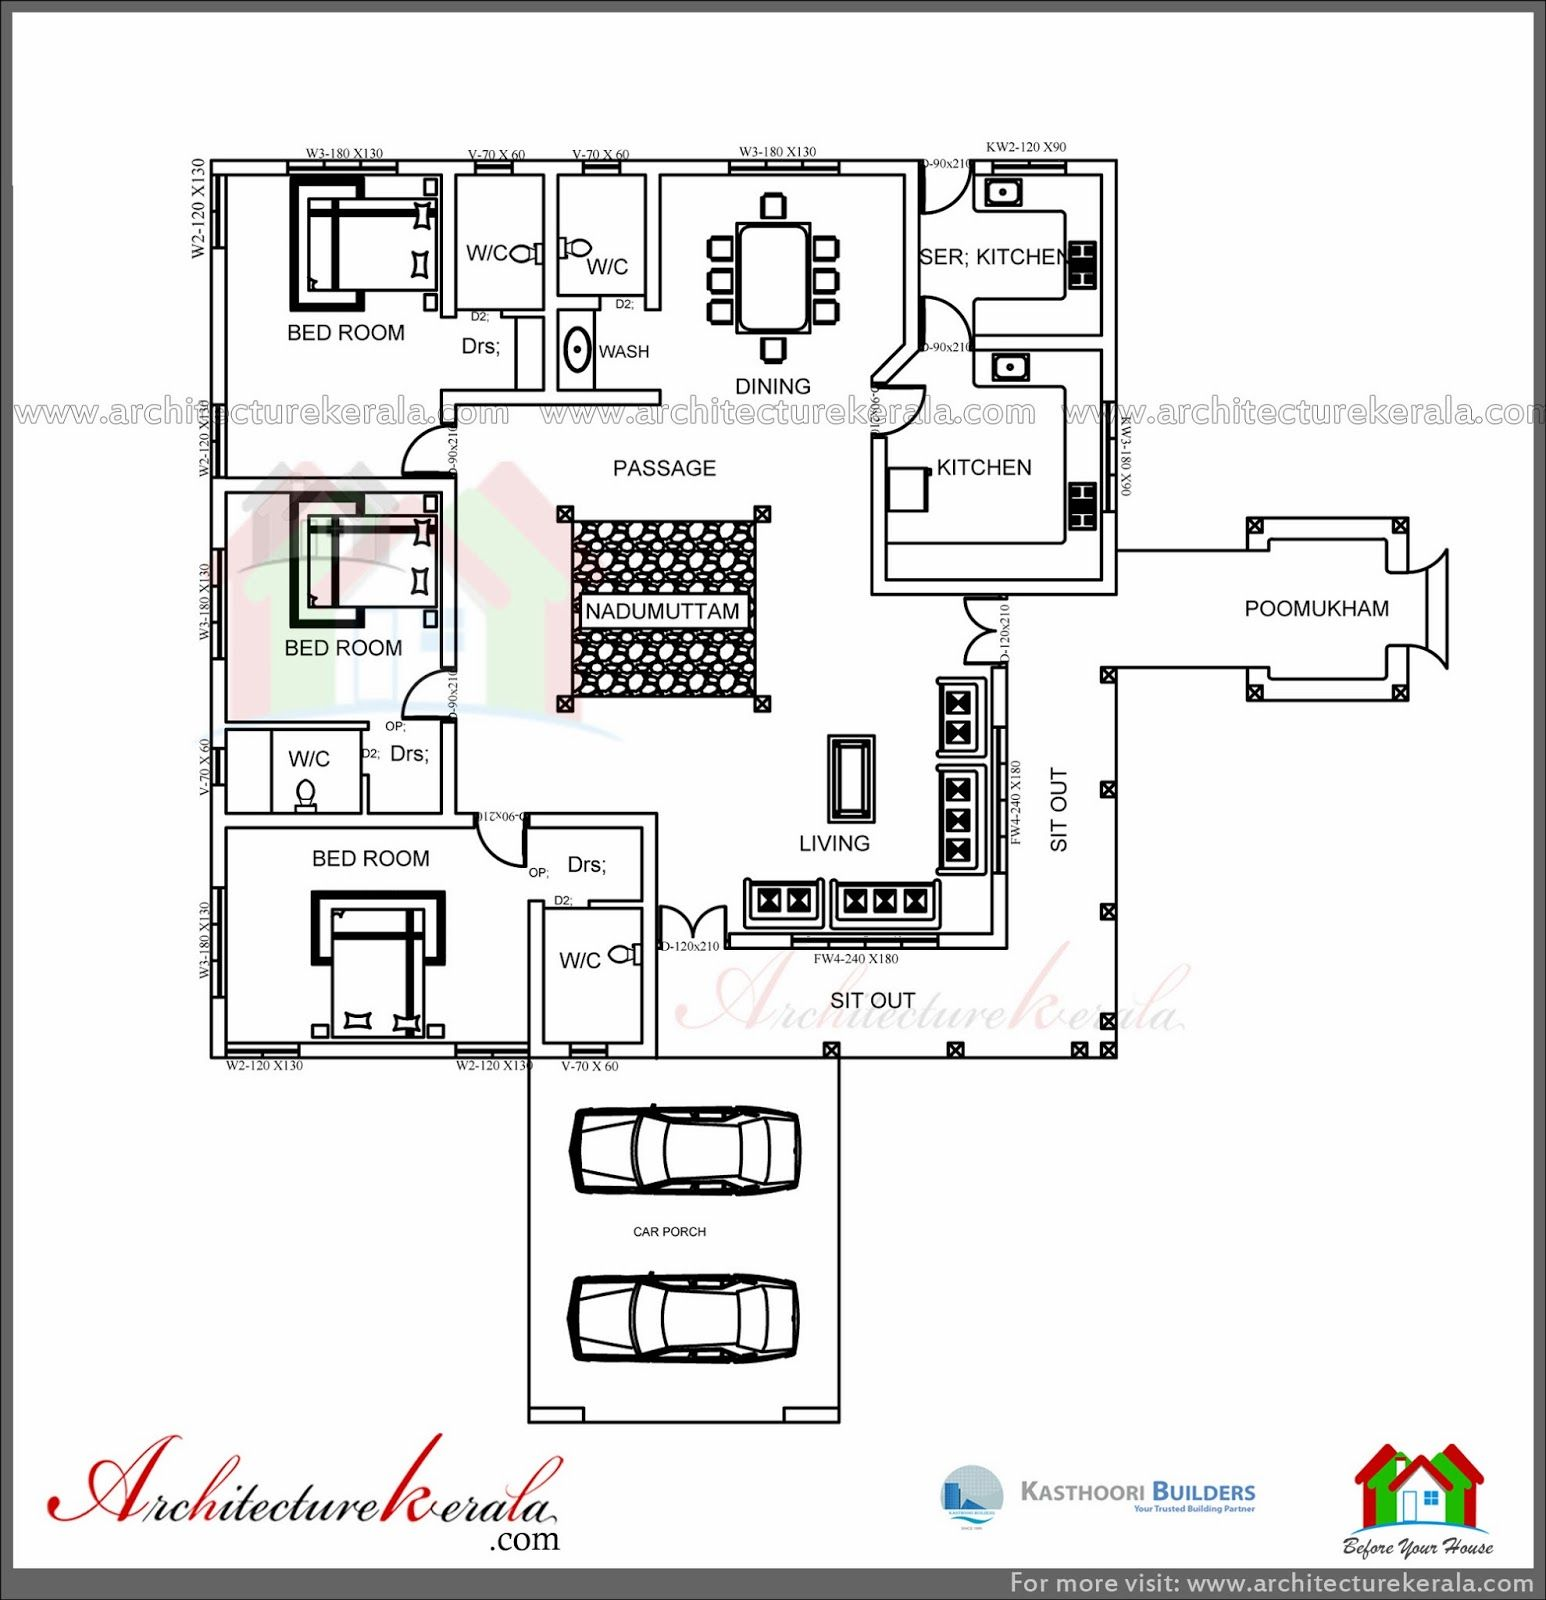 Traditional House Plan With Nadumuttam And Poomukham Architecture Kerala Kerala Traditional House Traditional House Plans Indian House Plans